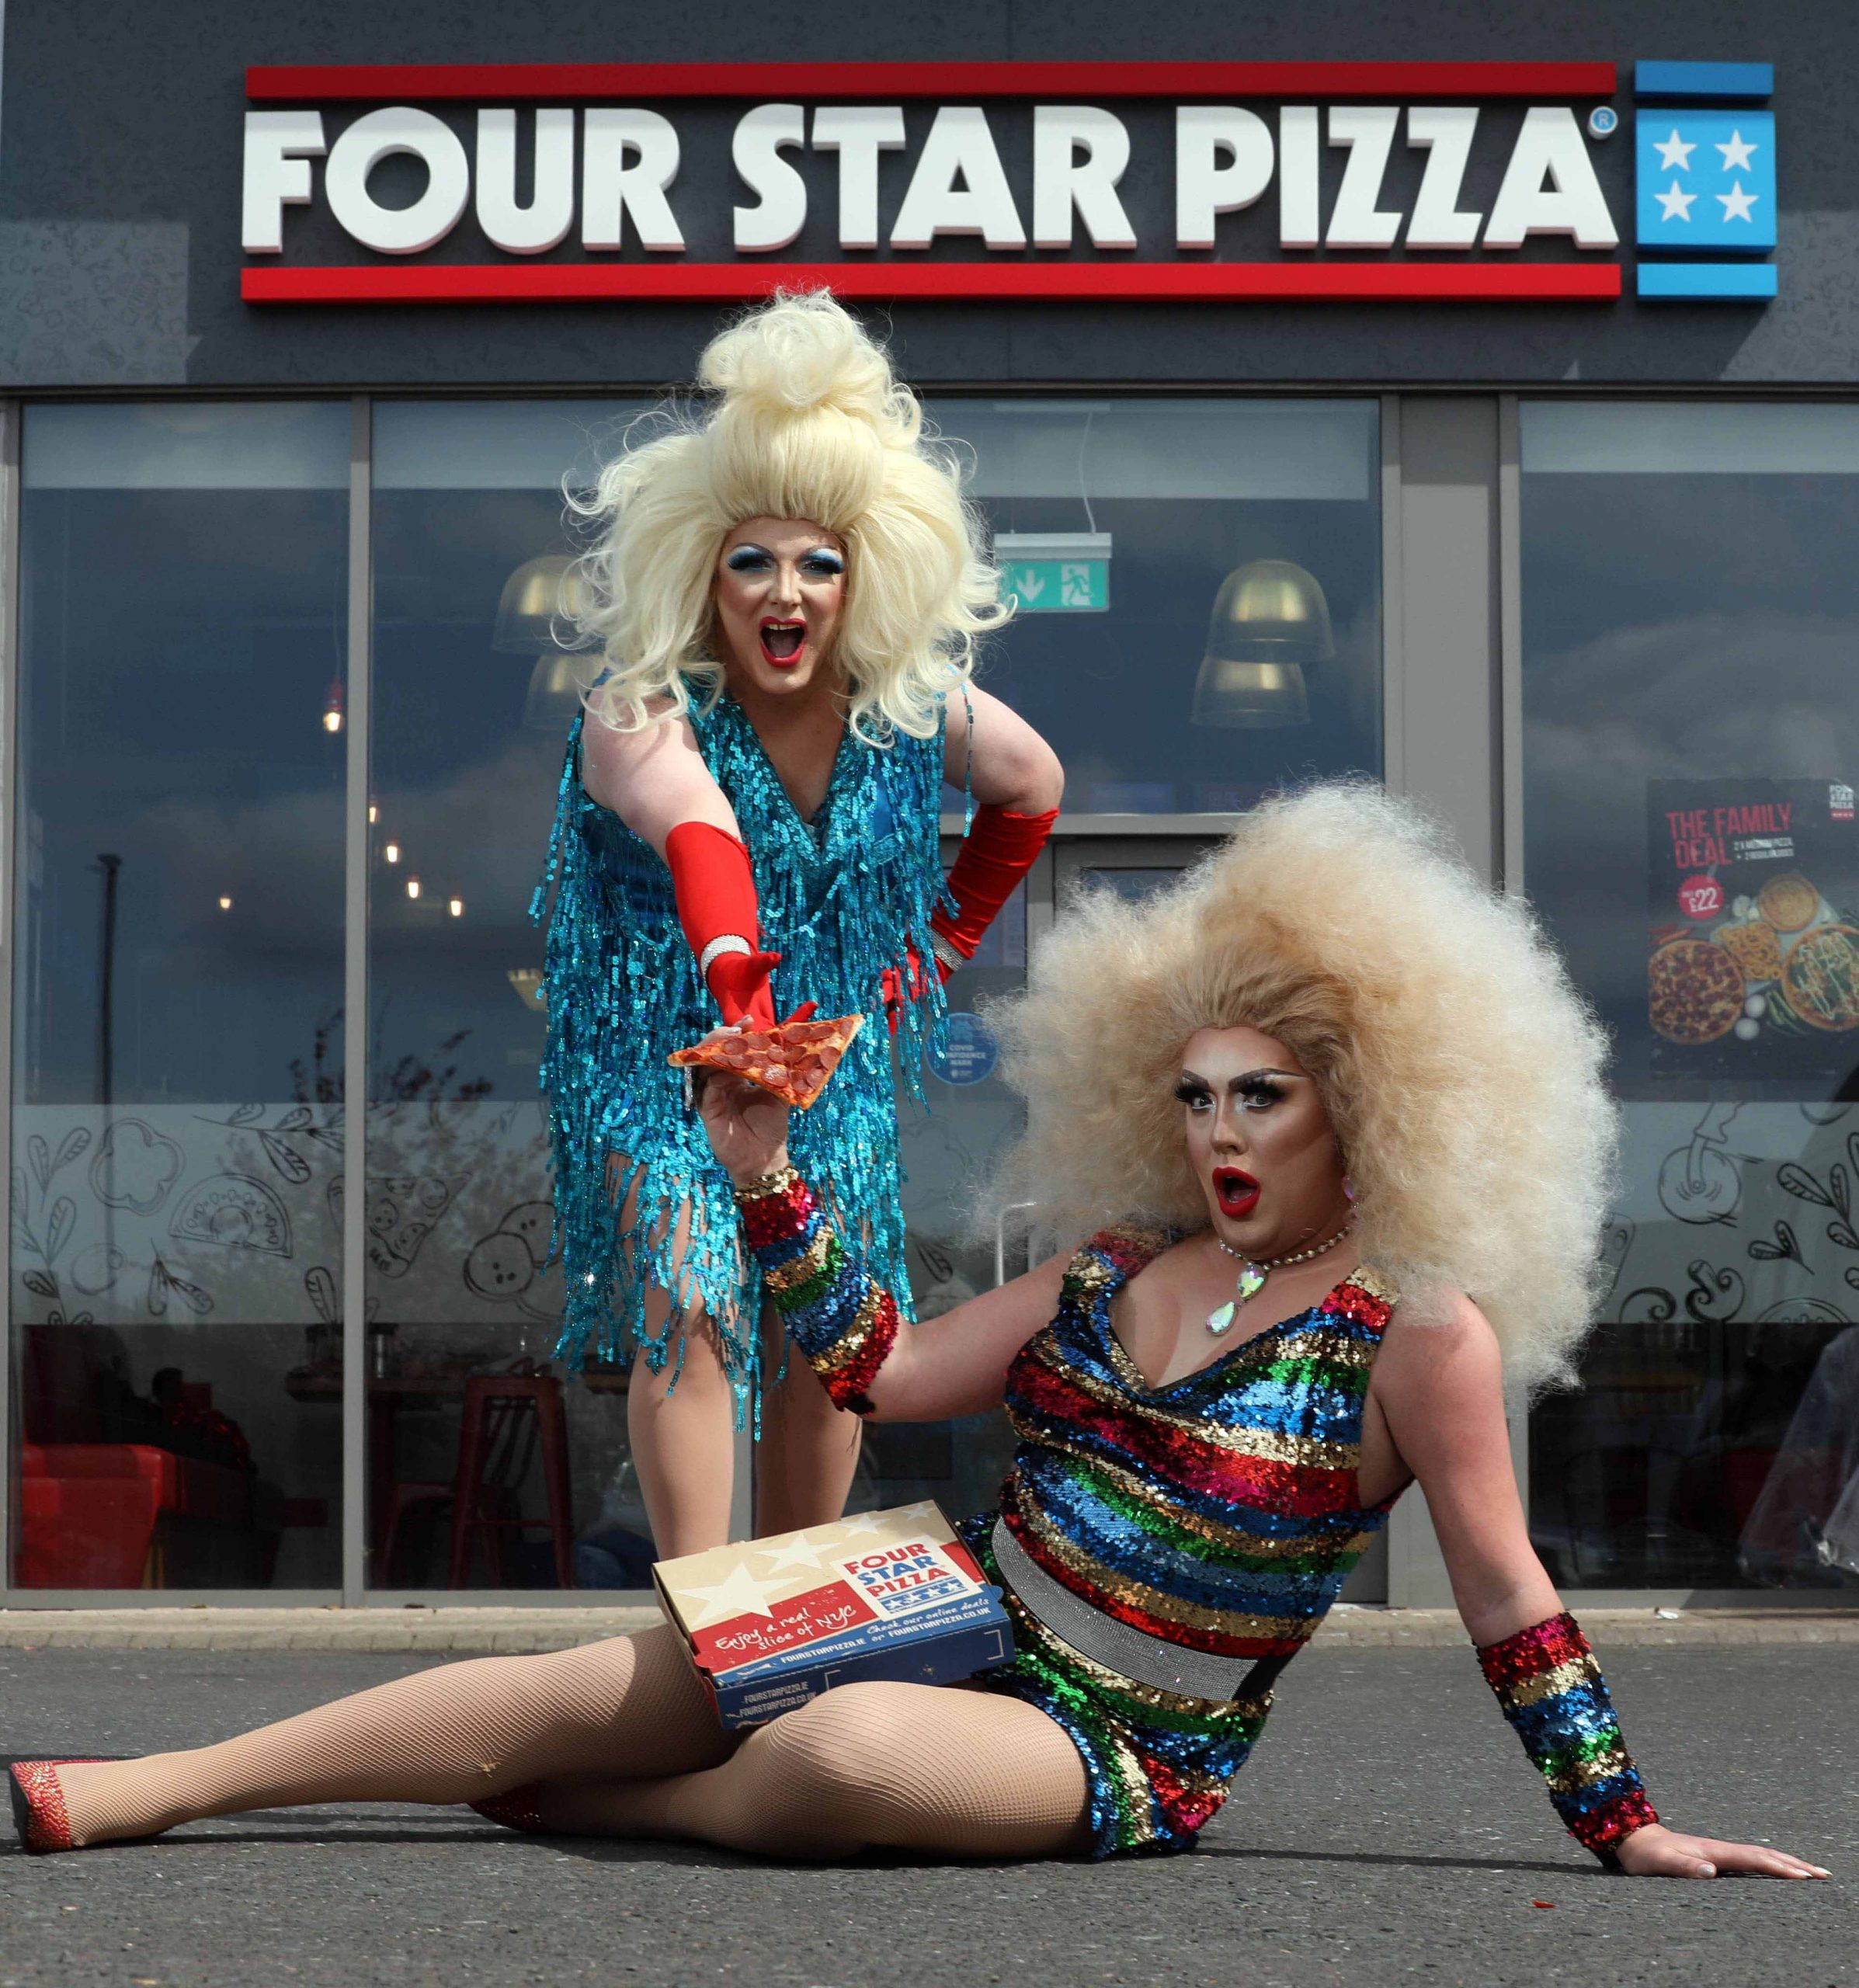 """Pizza fanatic, Alfie Parker (38) (blue dress), a mechanic from Belfast, had no idea when he responded to a message from his favourite pizza takeaway, that he would become Northern Ireland's latest Drag Queen, Anita Pizza, following a makeover by NI Drag Queen royalty, Trudy Scrumptious! Alfie, aka Anita Pizza, said: """"I didn't think my love of Four Star Pizza would lead me down this path, and in heels, but my outlook on life is that you only live once, so after discussing it with my wife, Isobel, and daughter Brianna, I decided to give it a go."""" Brian Clarke, Director at Four Star Pizza, explained: """"We wanted to do something a bit different for the launch of our new pizzas; everyone knows how amazing our pizzas are, it wasn't about that, we just wanted to stop our customers in their tracks with something surprising that would put a smile on their faces."""" Visit www.fourstarpizza.co.uk for more information and details of their new menu."""